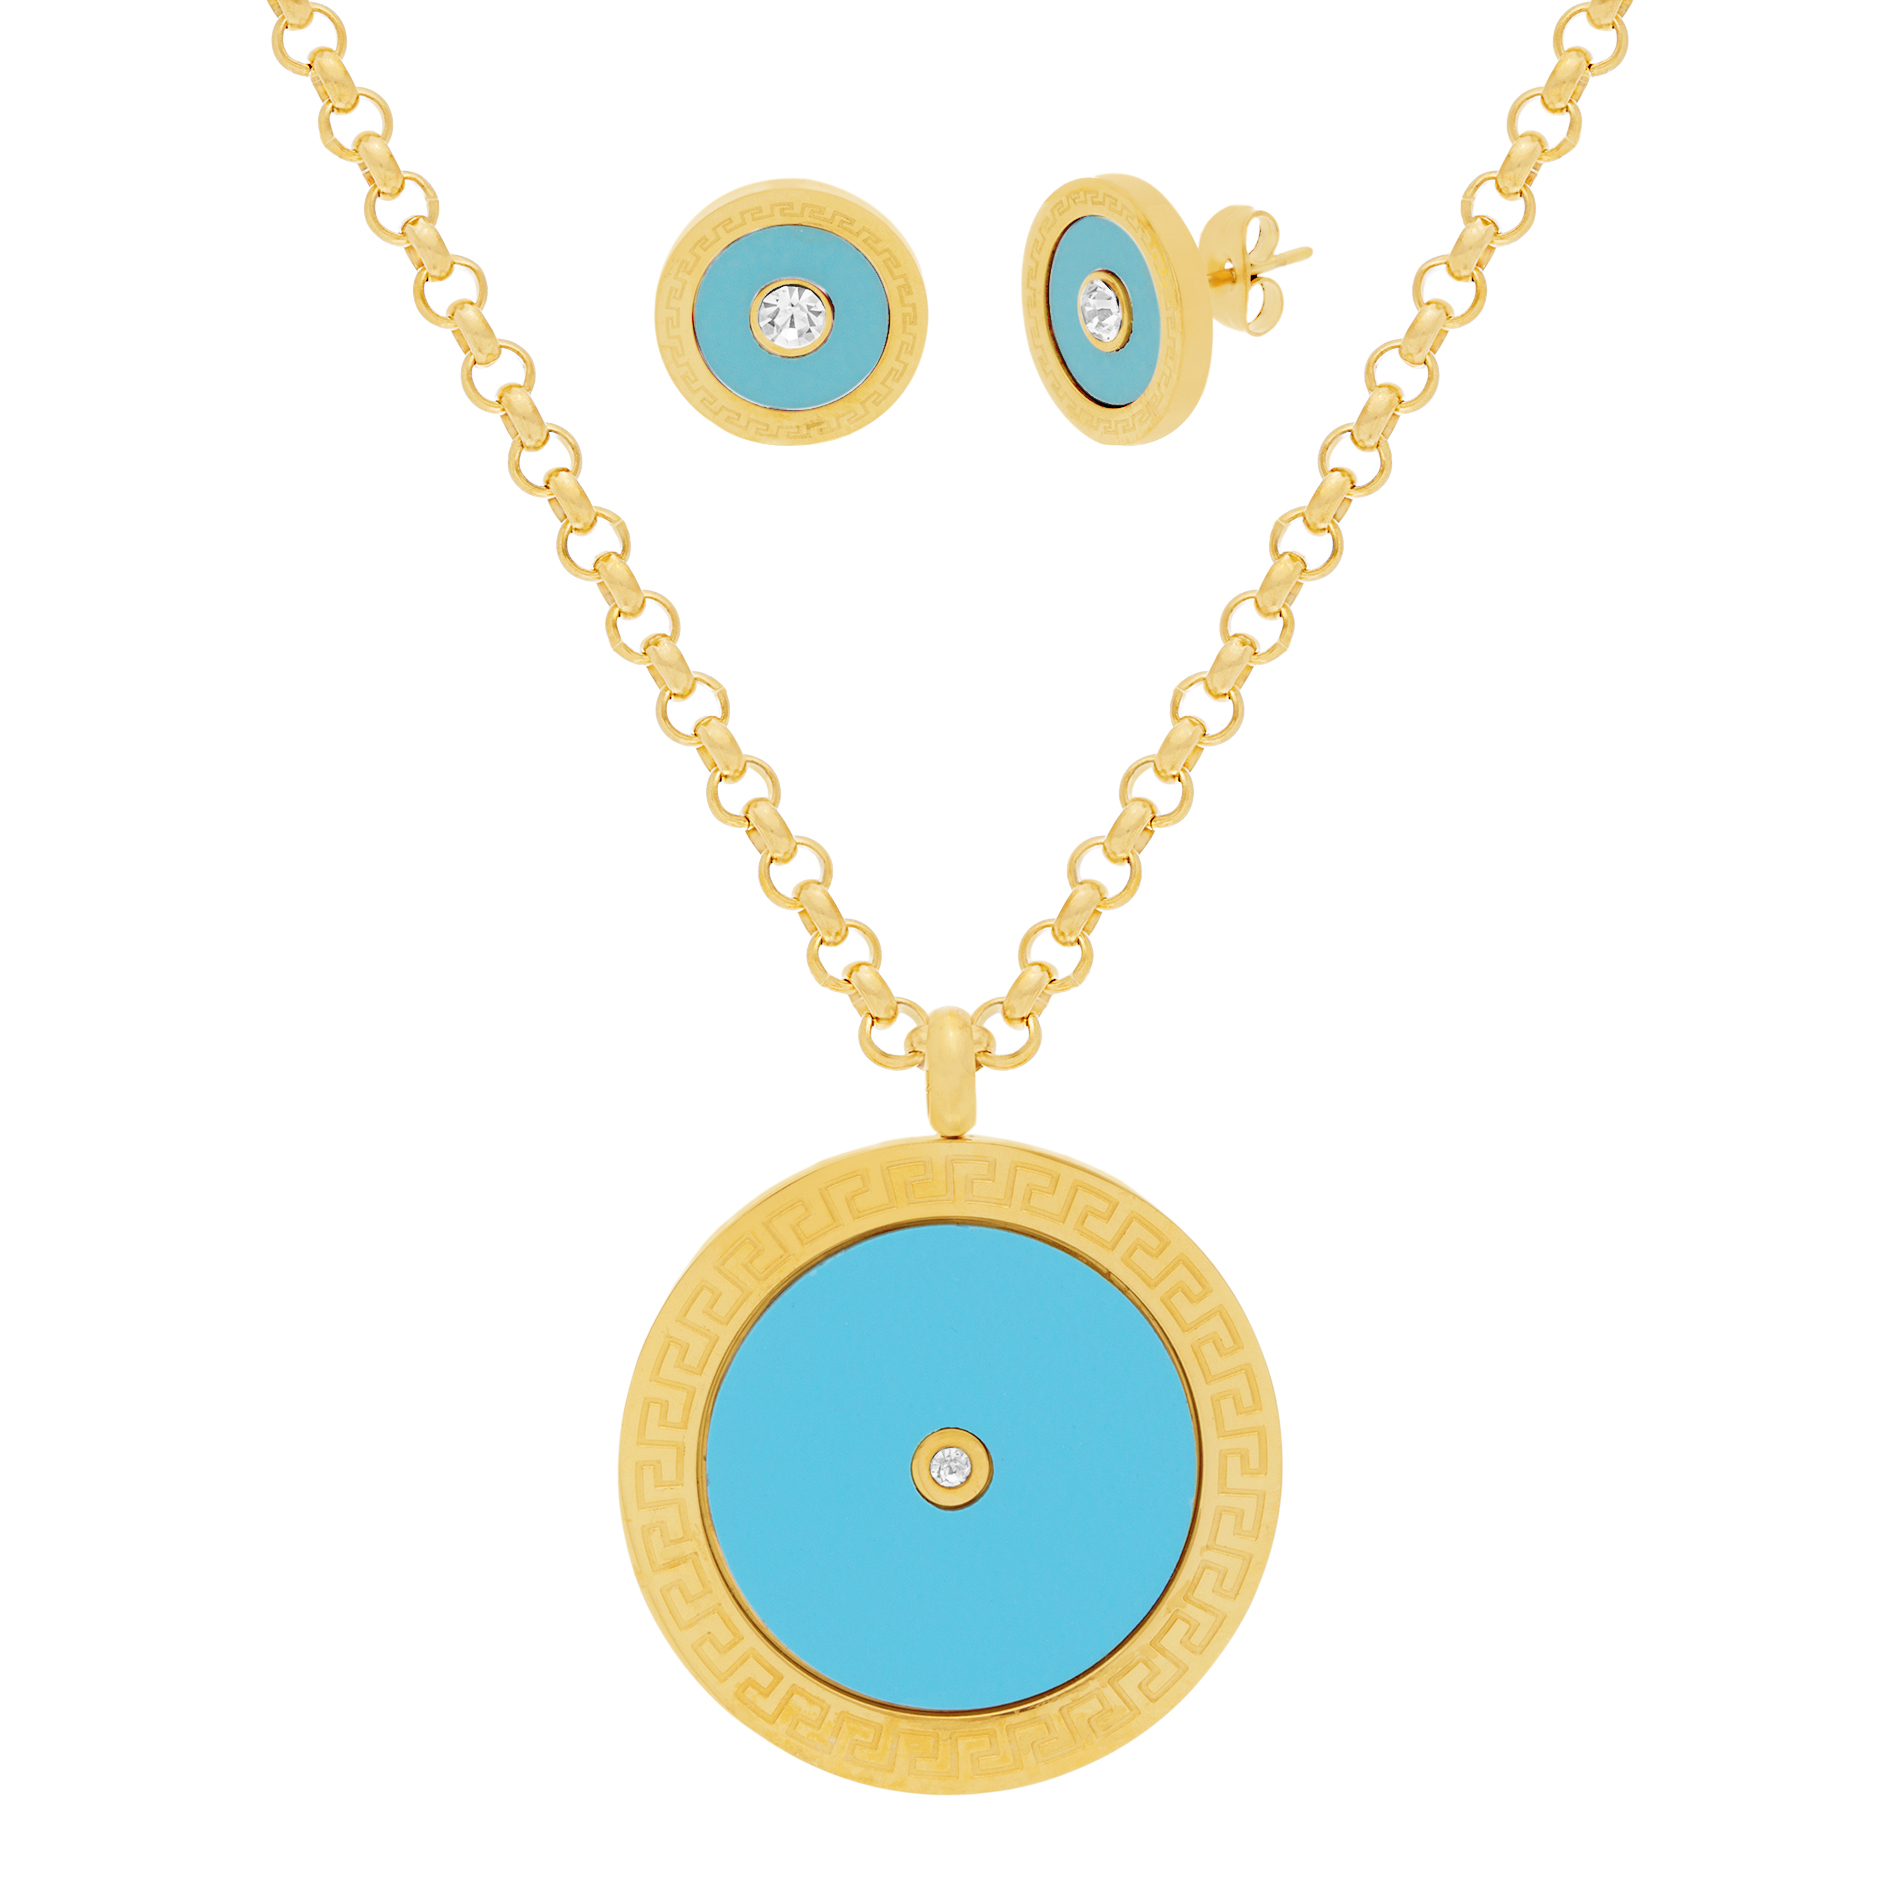 Gold-Tone Stainless Steel Center Cubic Zirconia Turquoise Circle Earring and Necklace Set